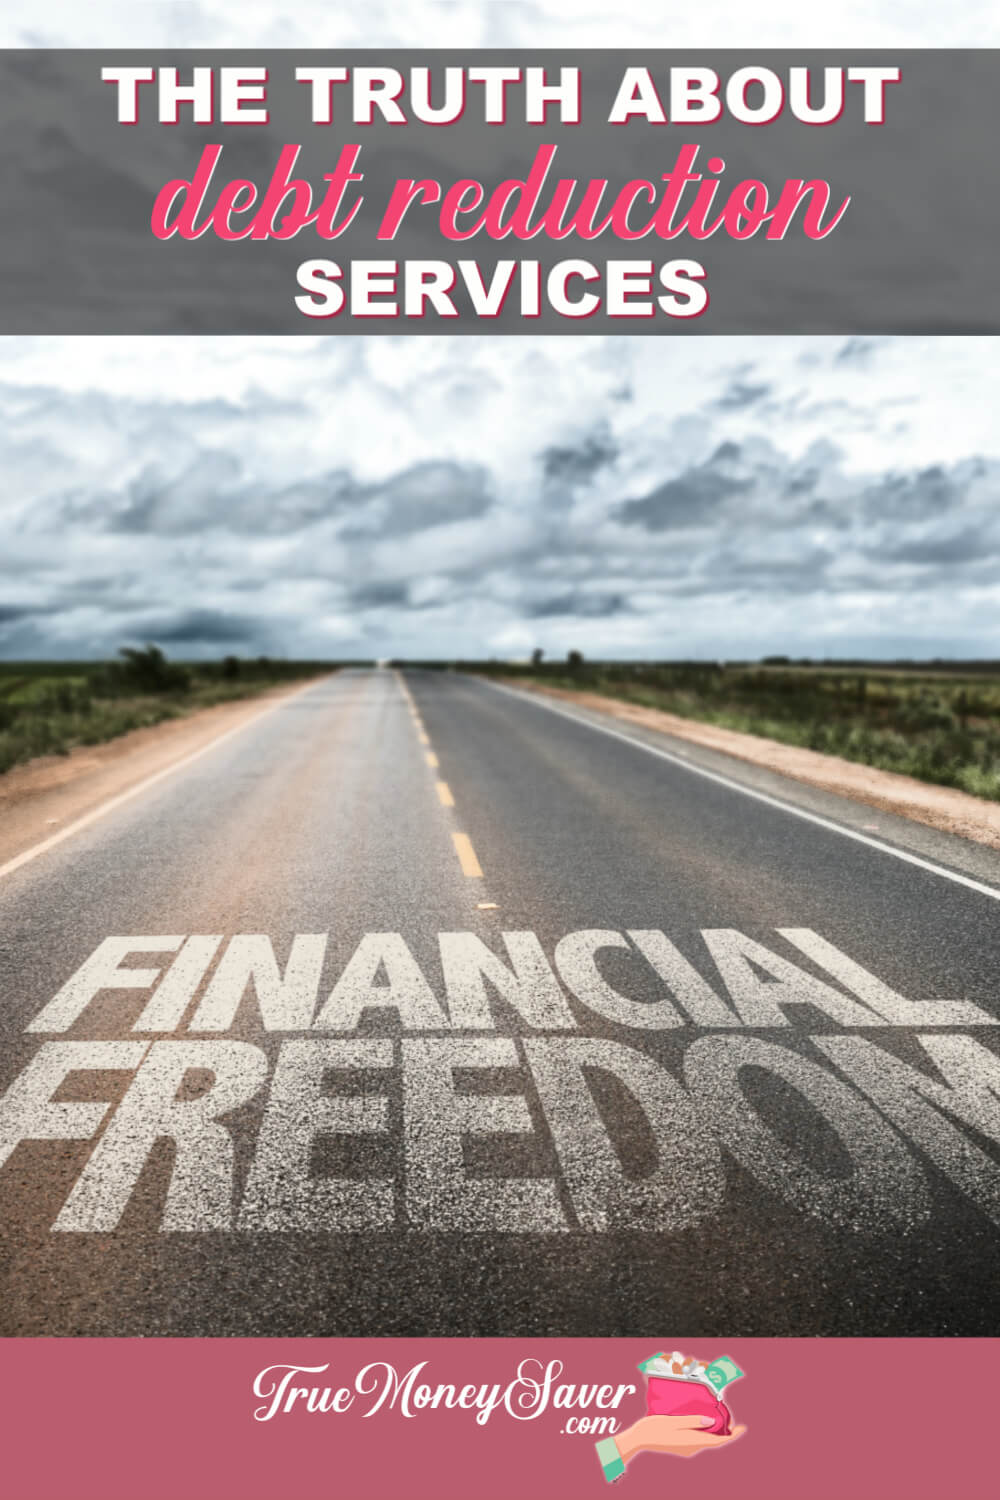 The Truth About Debt Reduction Services